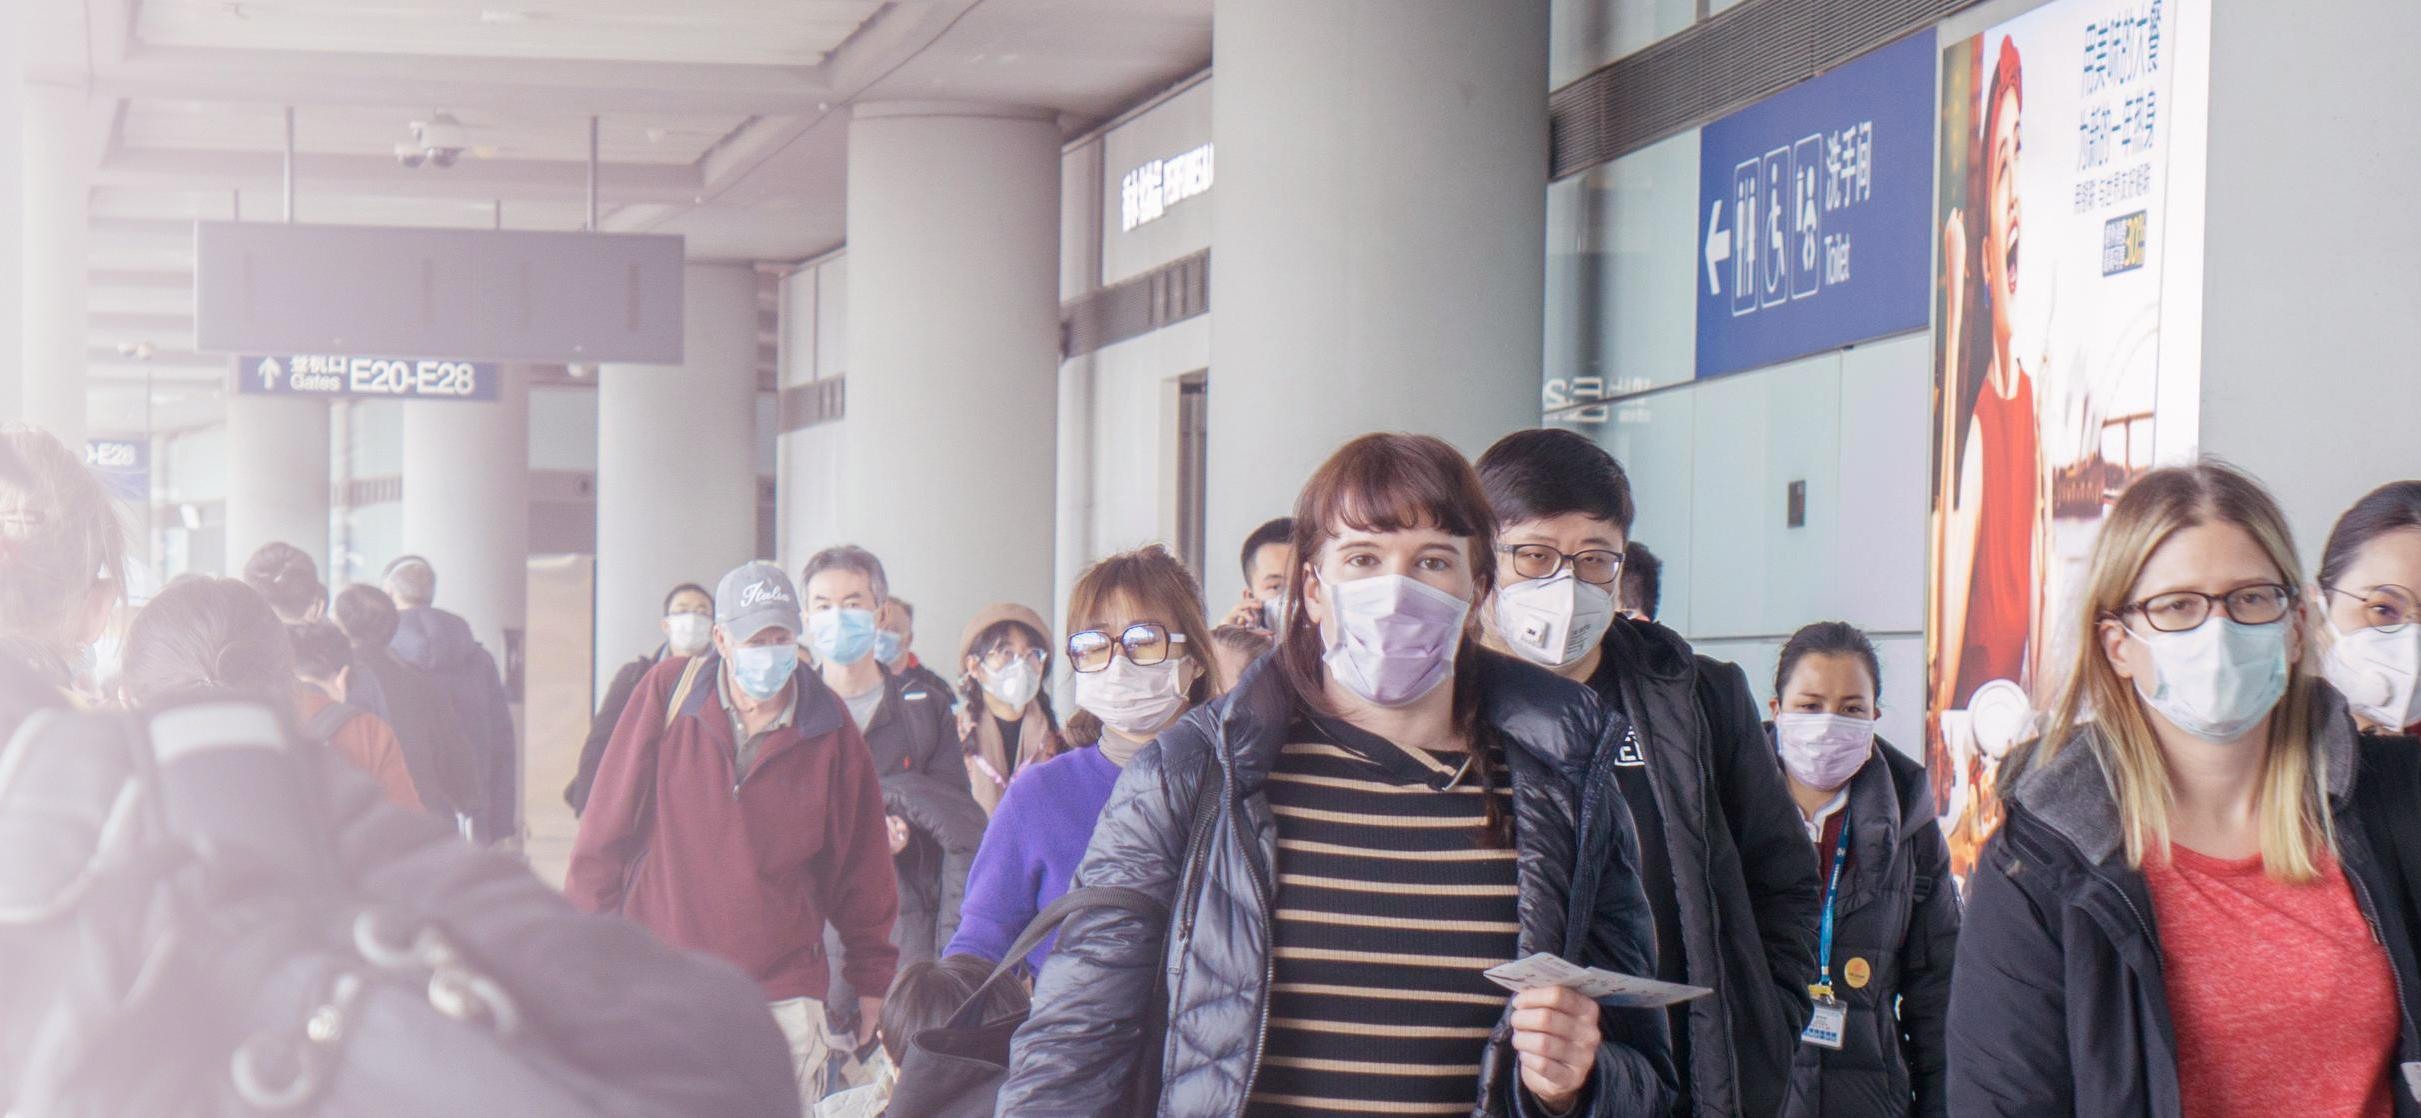 People in surgical masks